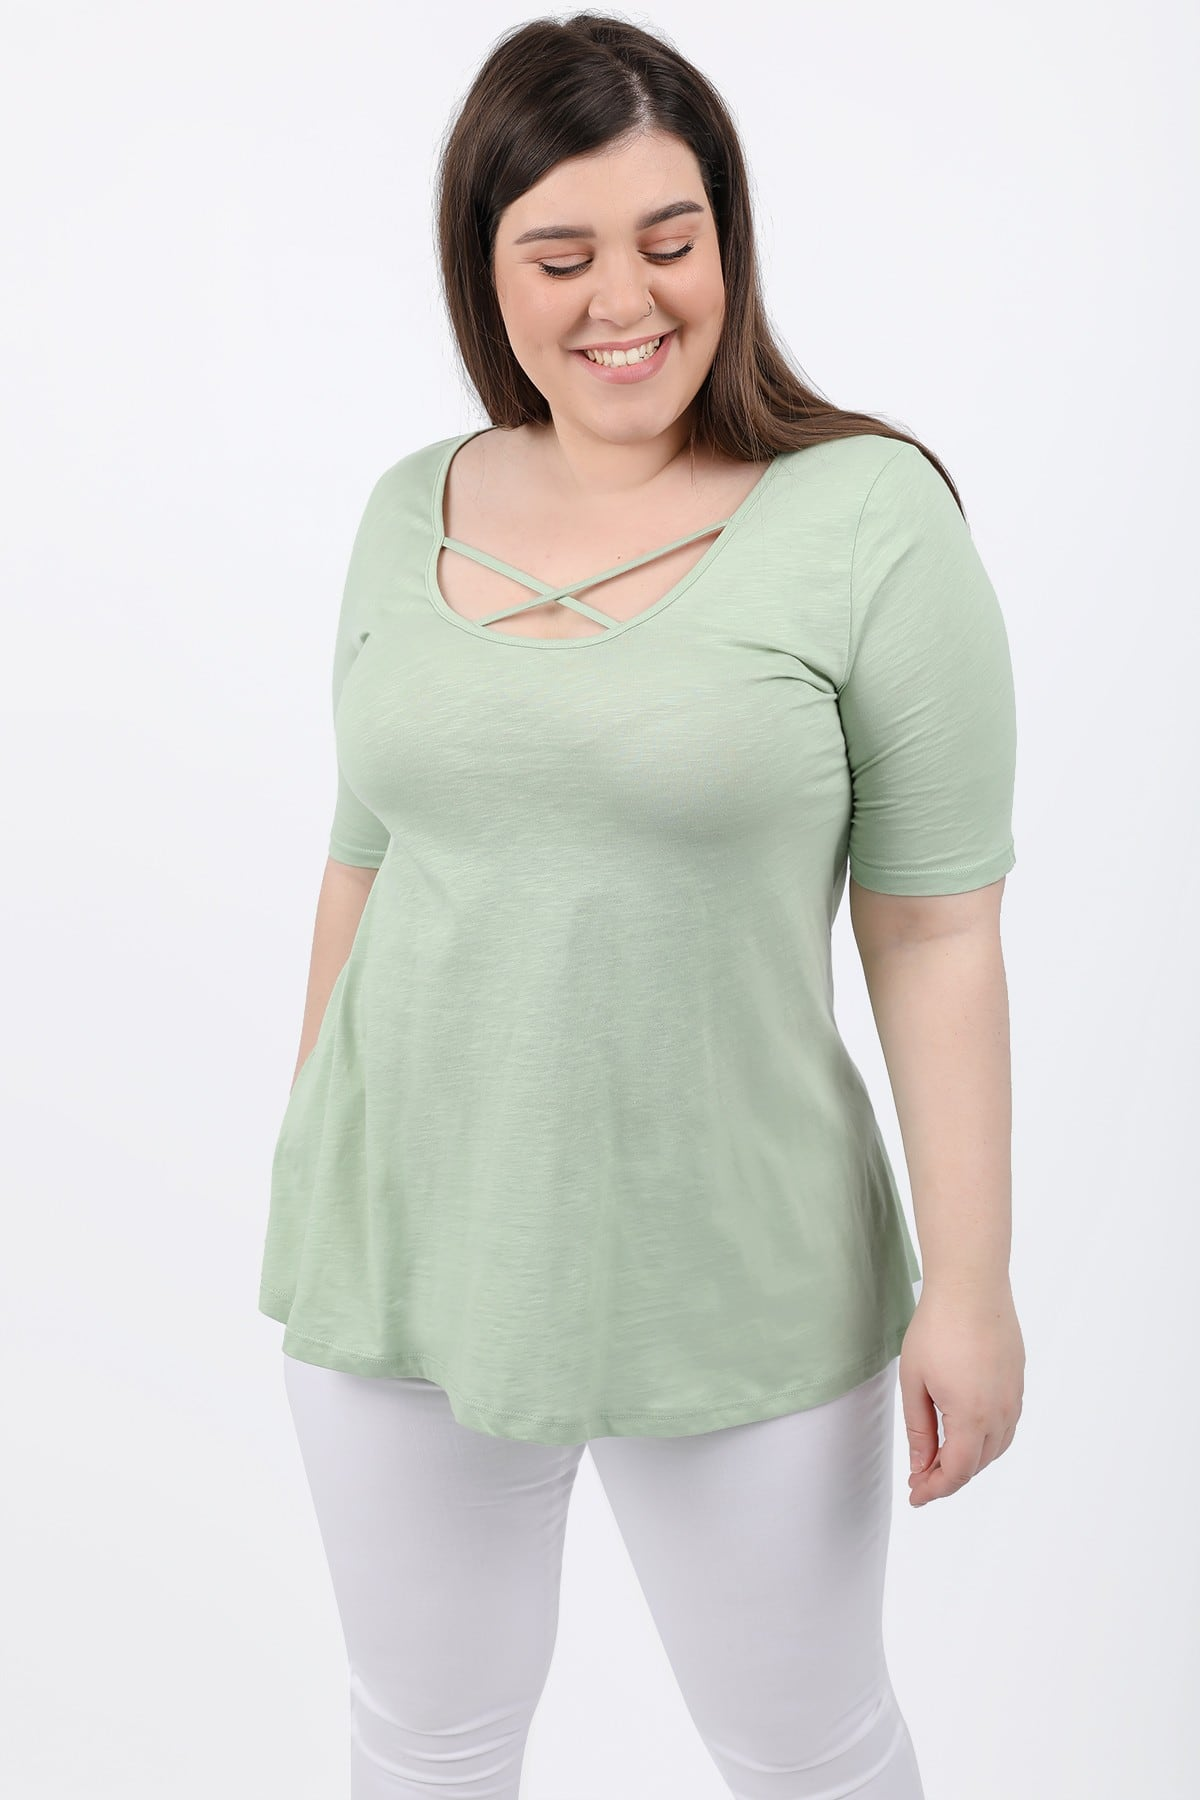 Basic top with crossover on the front